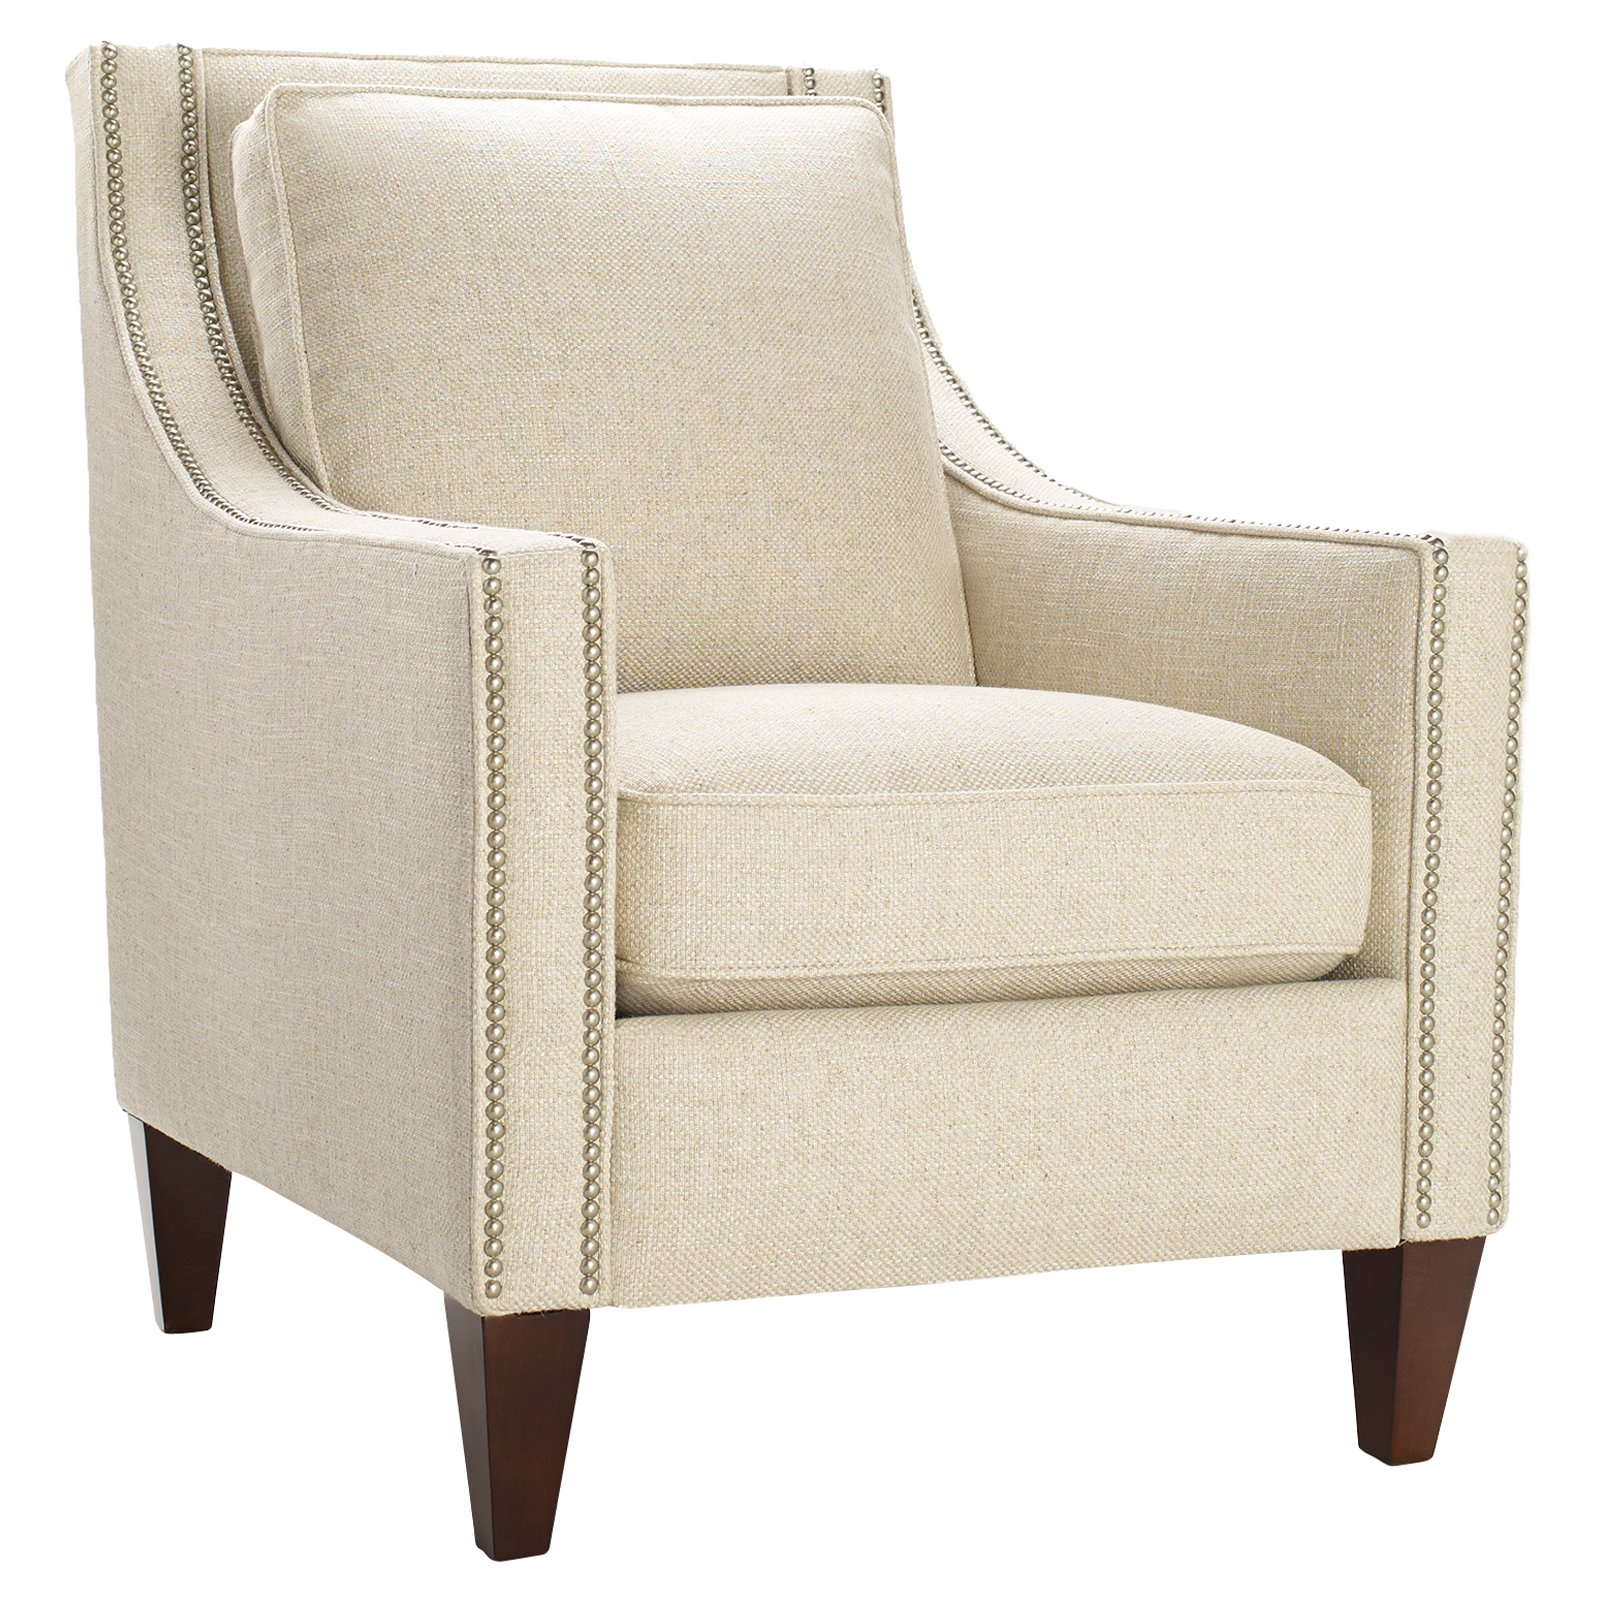 Cool accent chairs homesfeed for Living room accent chairs